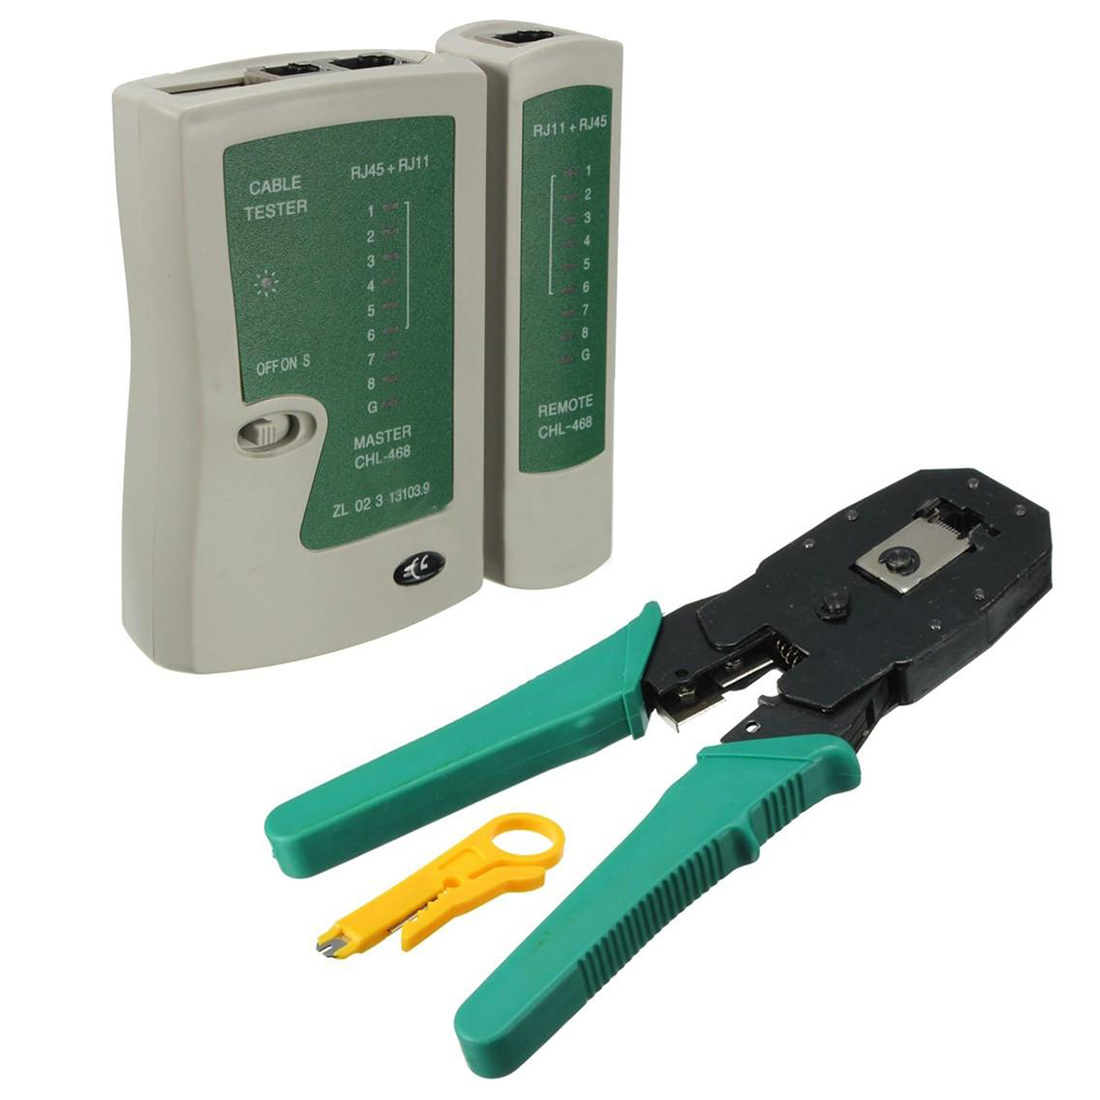 Professional Network Cable Tester Lan Rj45 Rj11 With Wire Cable Crimper Crimp PC Network Hand Tools Herramientas(China)